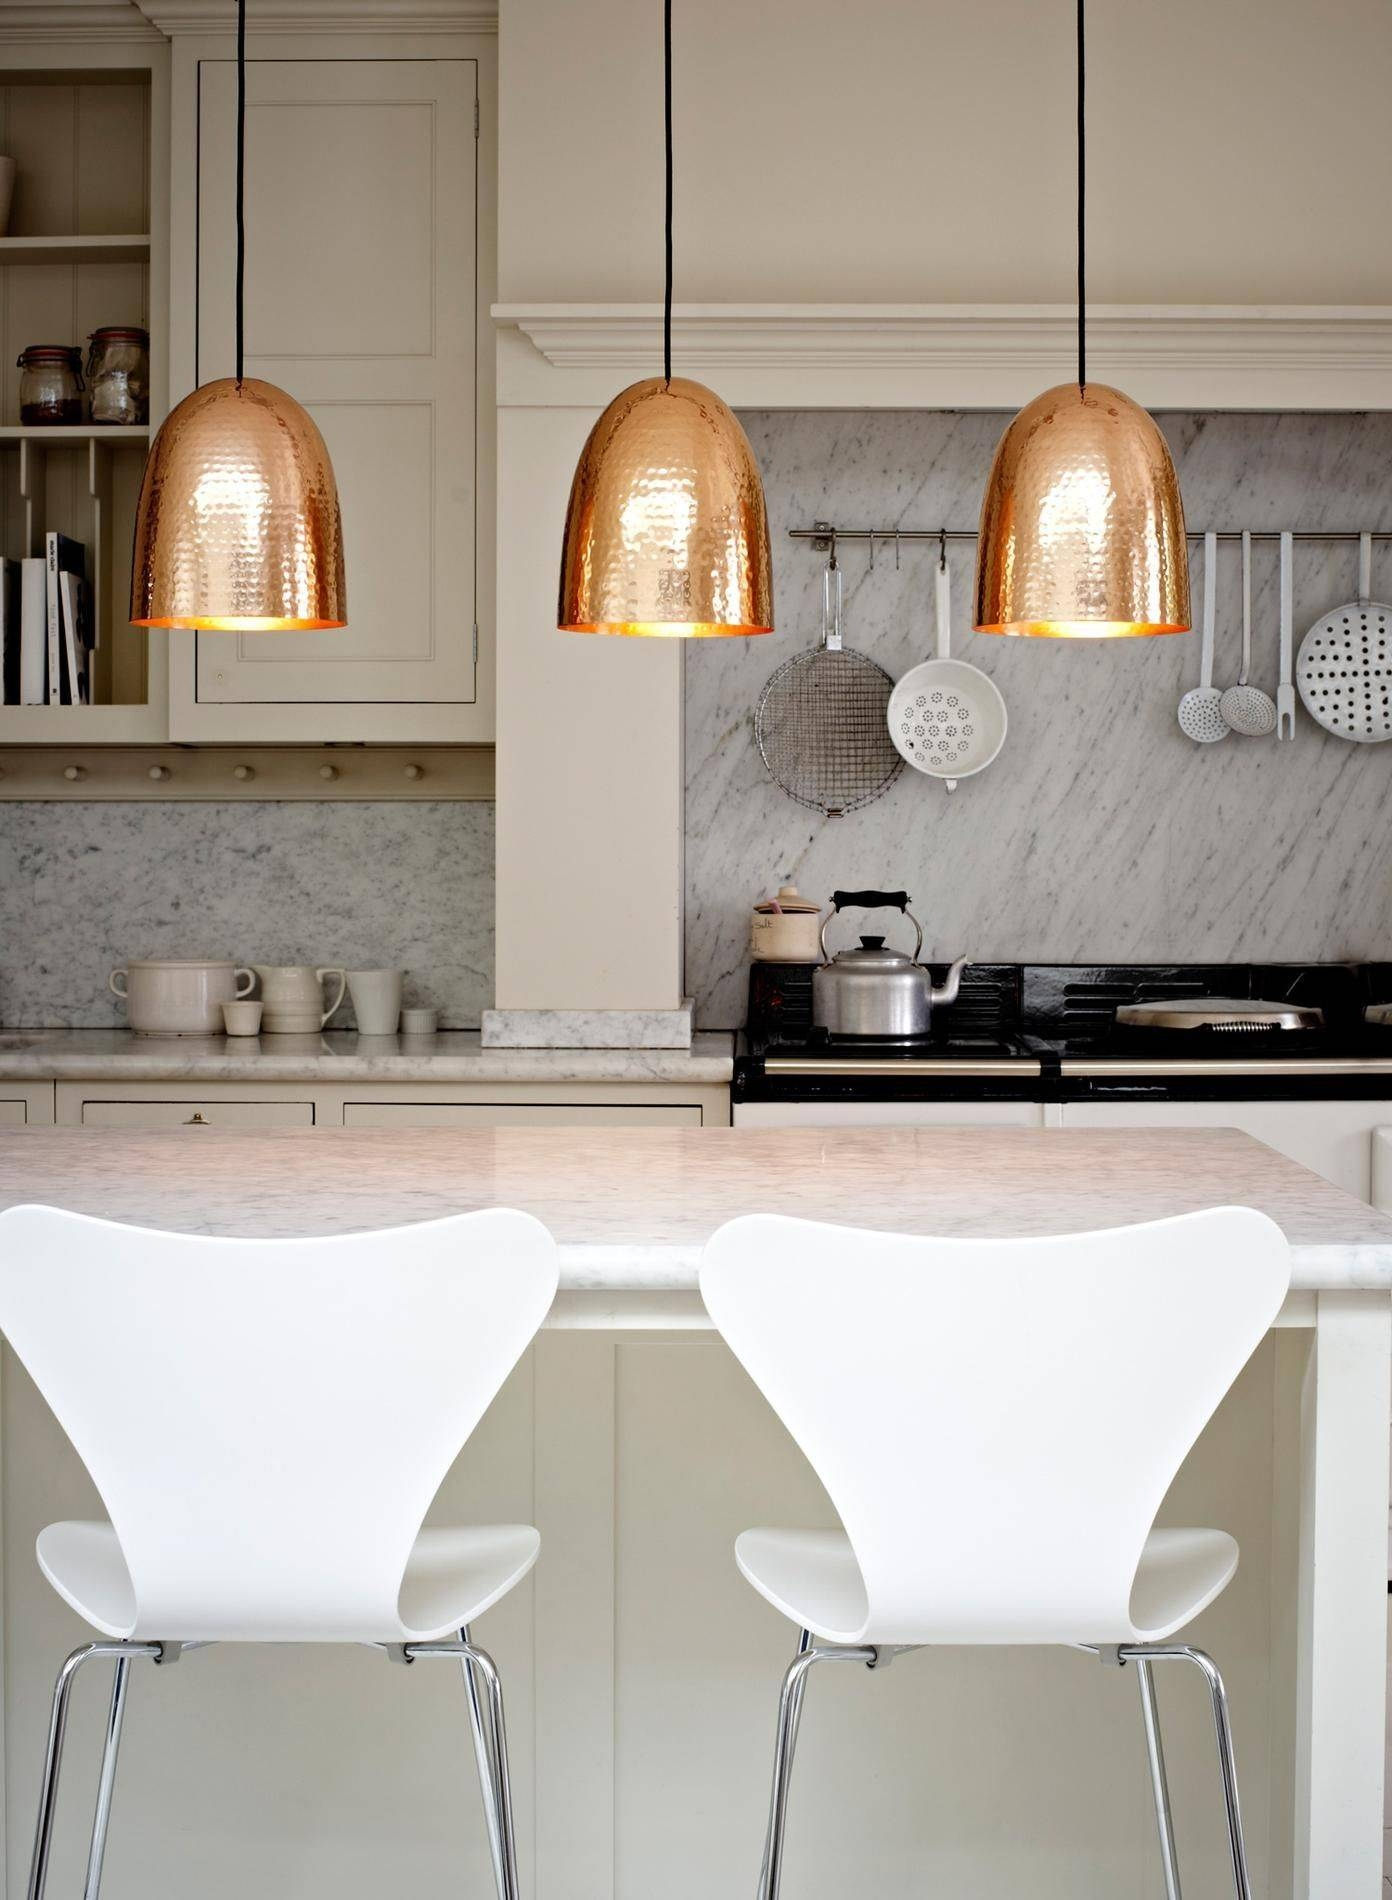 lighting design best kitchen pendant sources home of clemson classic